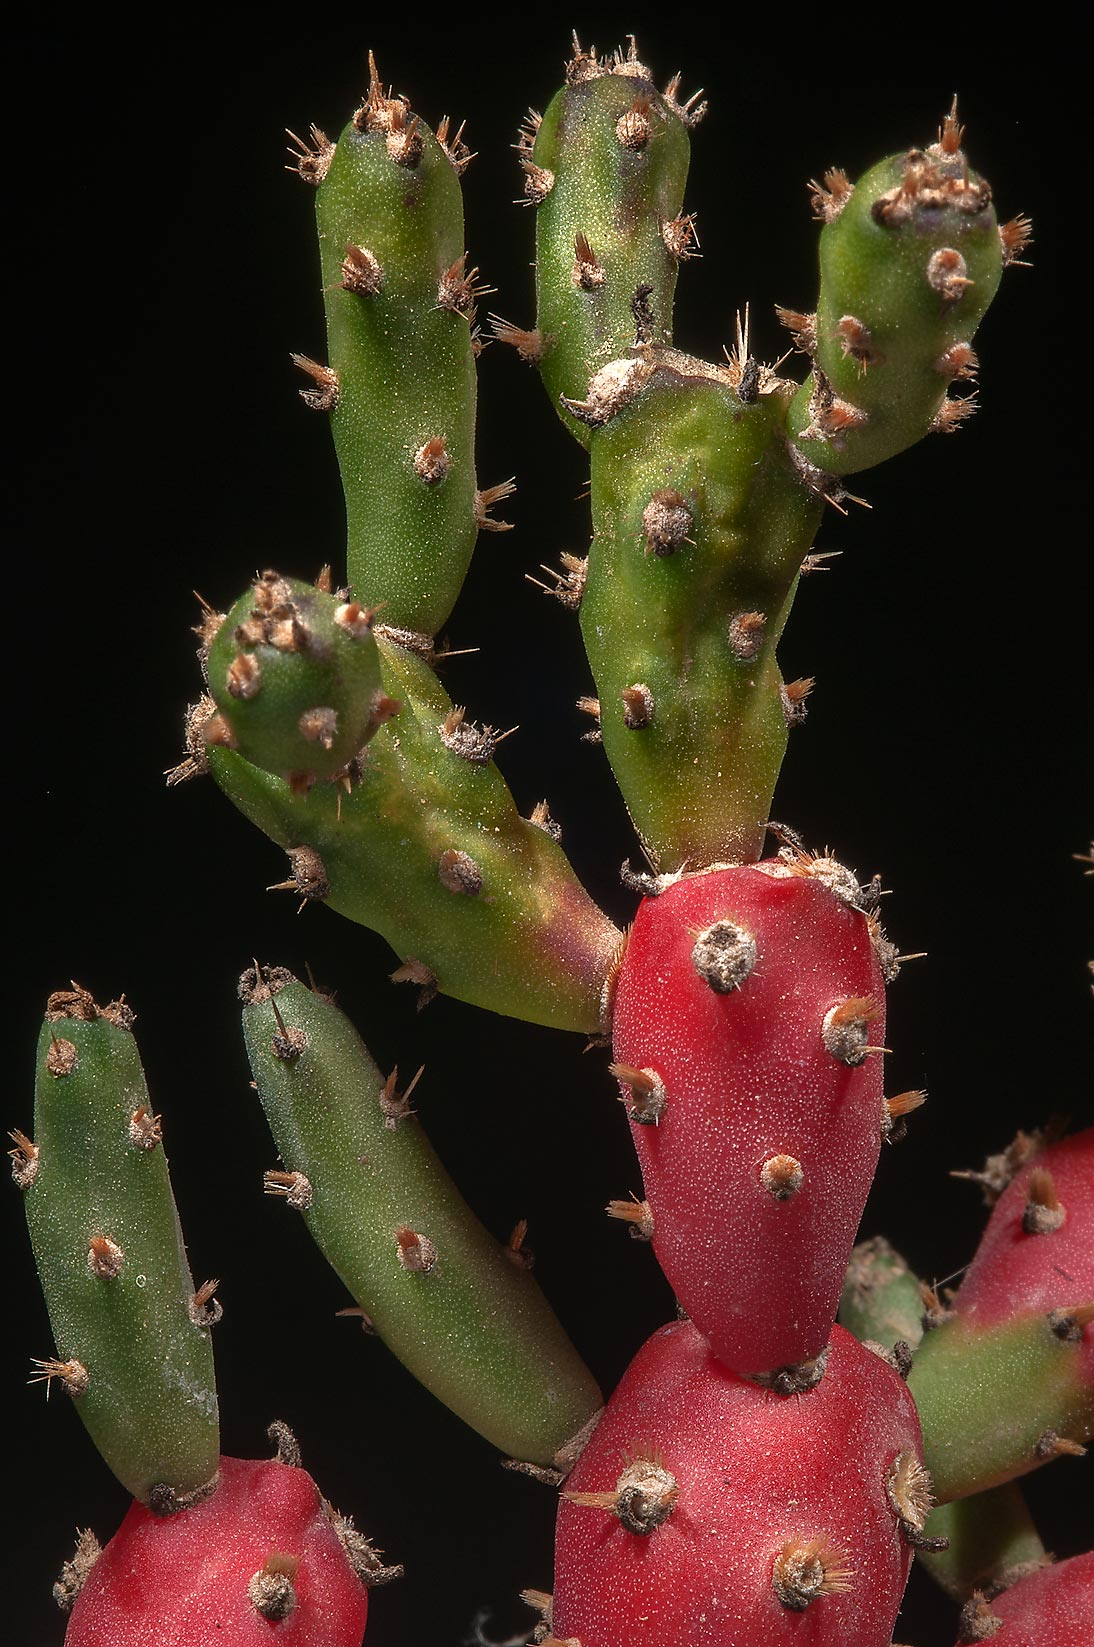 Tasajillo (Cylindropuntia) cactus taken from a...from Milano. College Station, Texas